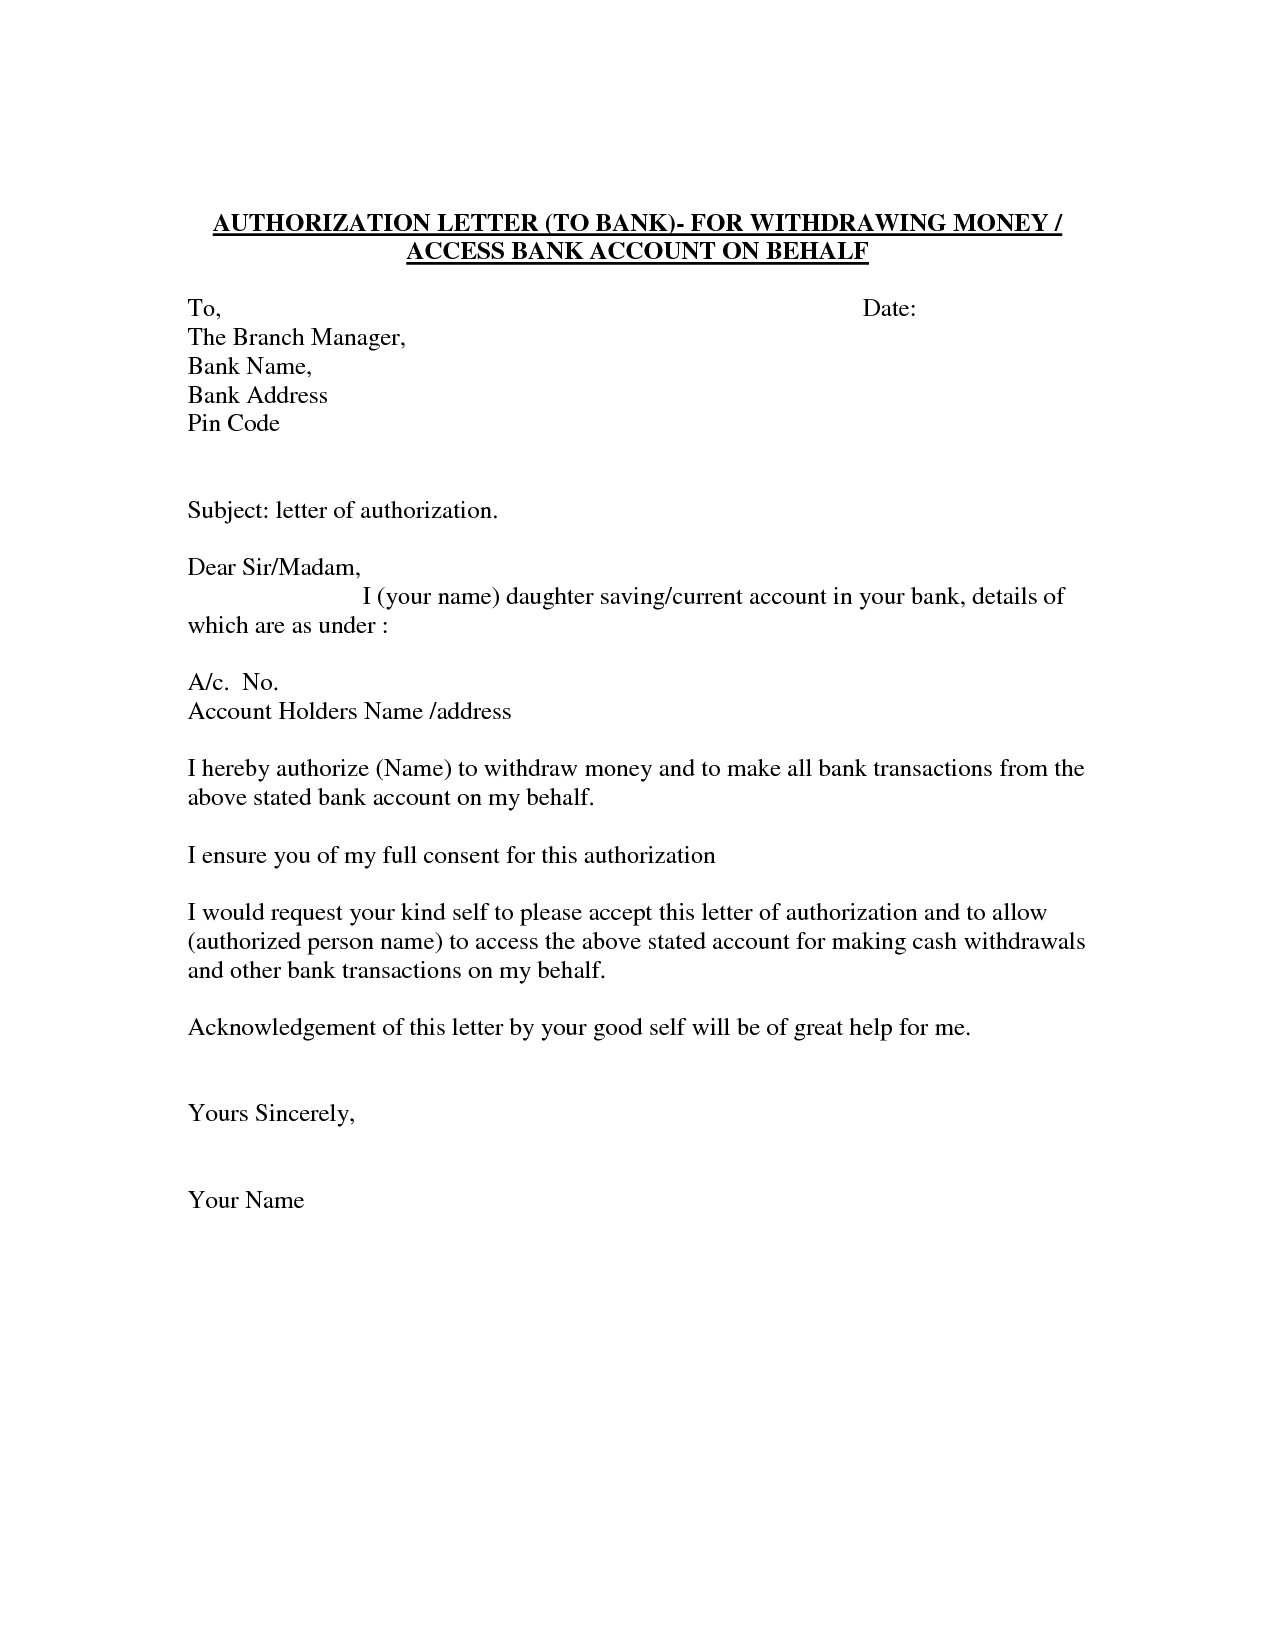 Past Due Rent Letter Template - Past Due Letter Template Luxury Authorization Letter Template Best